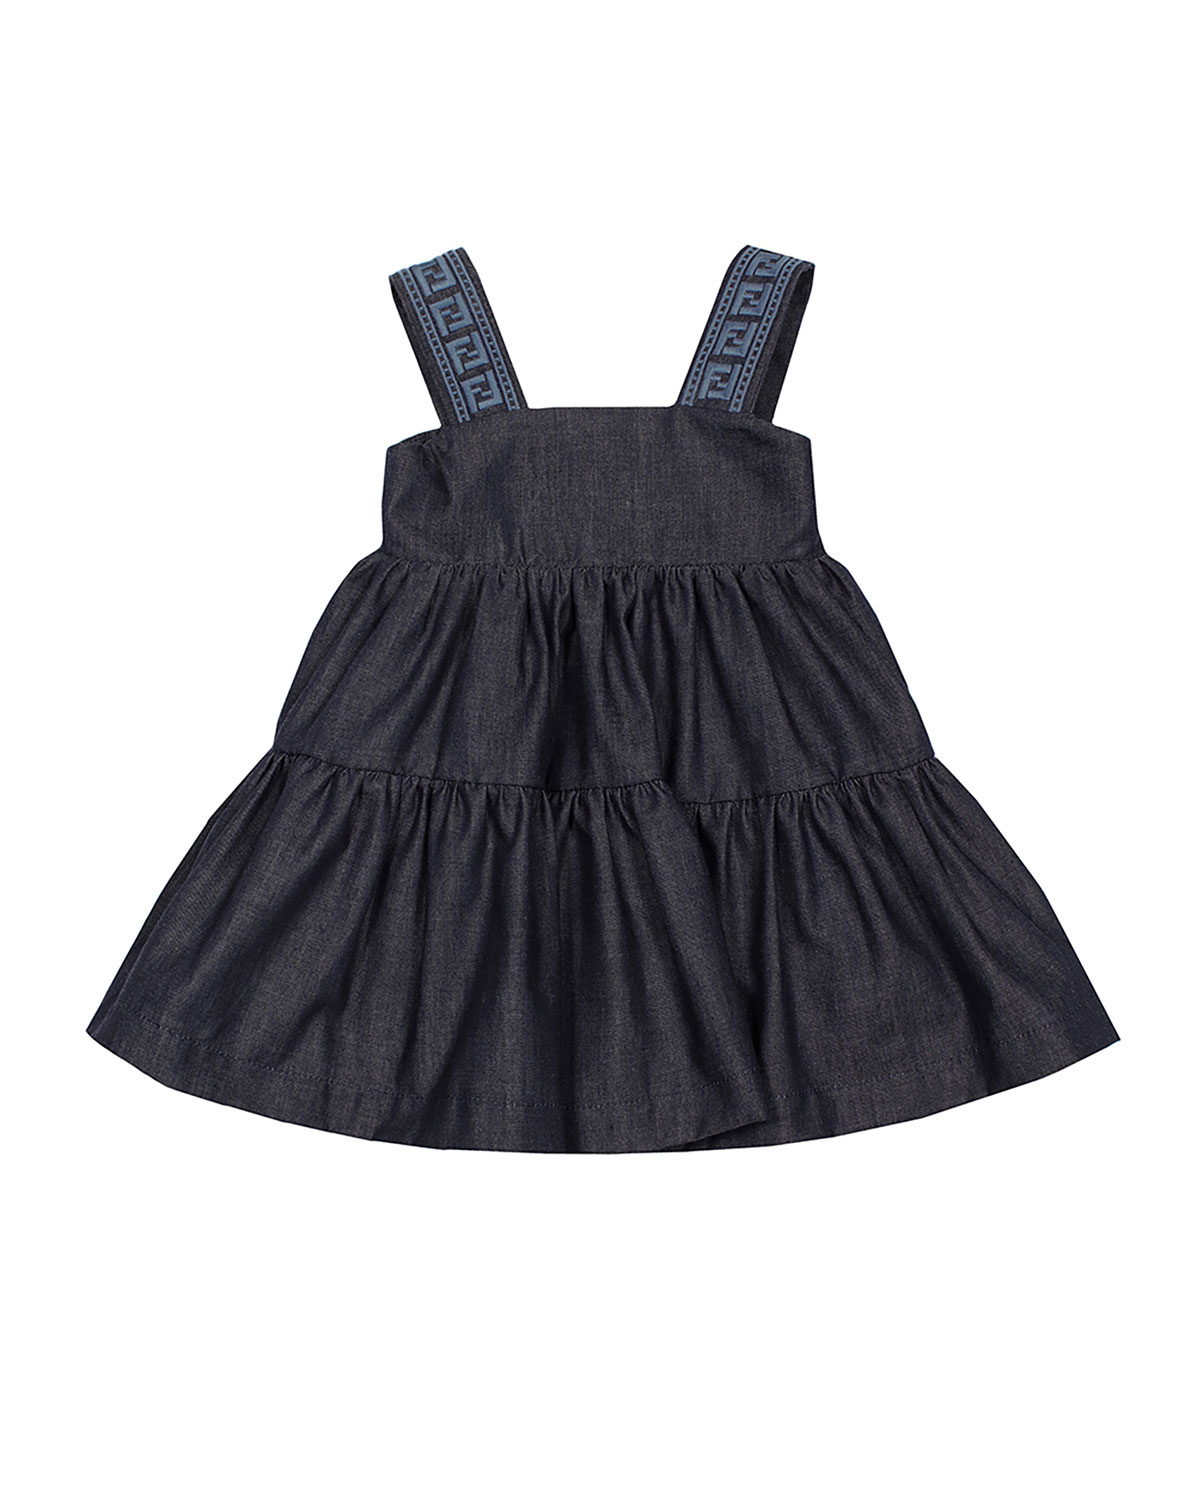 Fendi GIRL'S SOLID TIERED LOGO EMBROIDERED DRESS